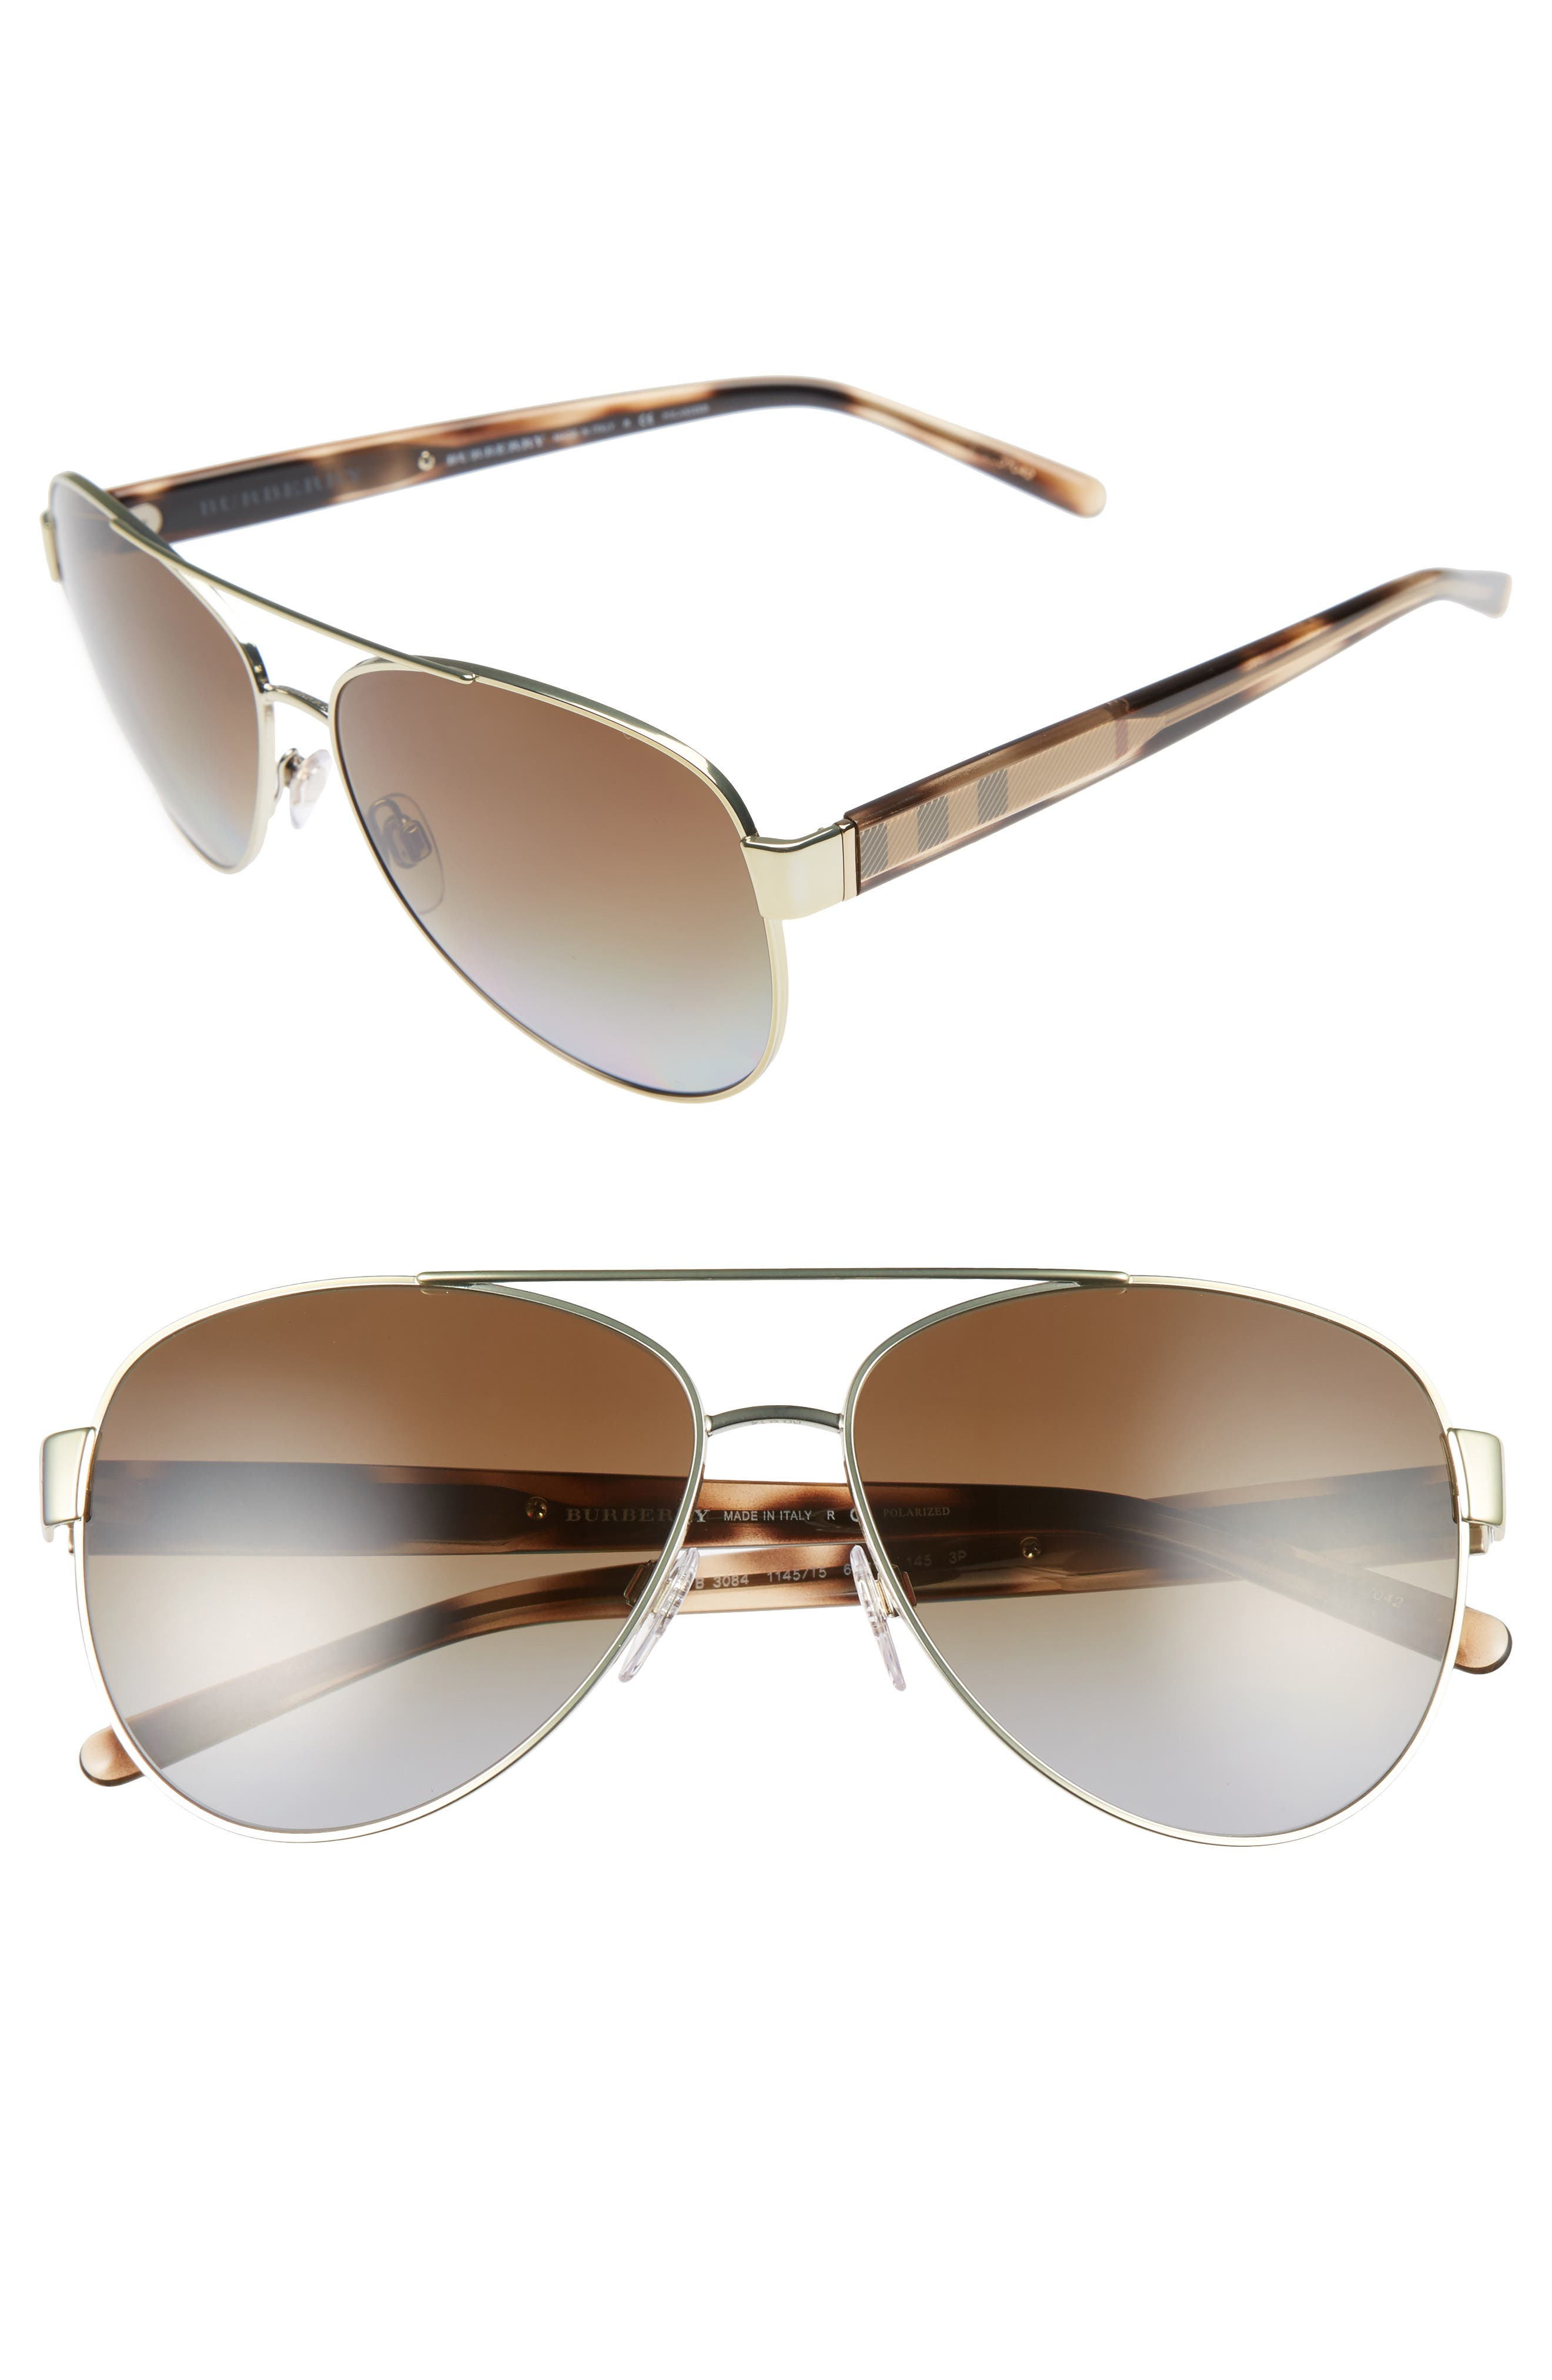 Burberry 60mm Polarized Aviator Sunglasses